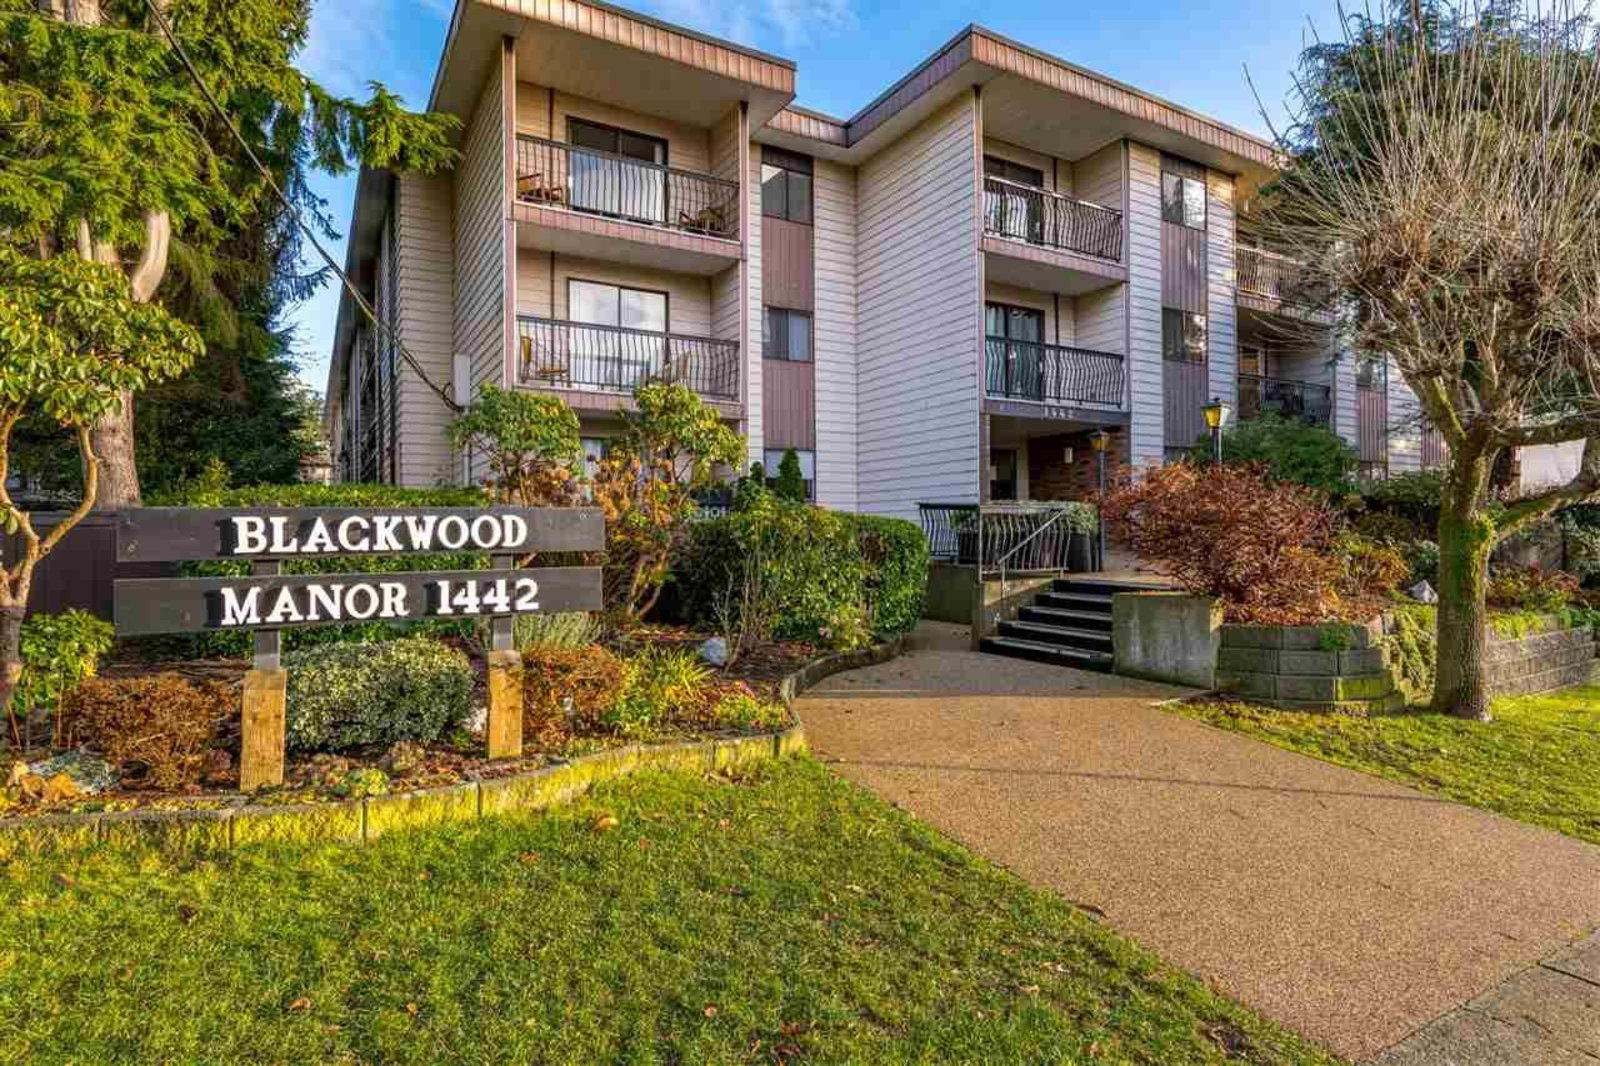 Sold 316 1442 Blackwood Street White Rock On January 2021 View Sold Price Bccondosandhomes